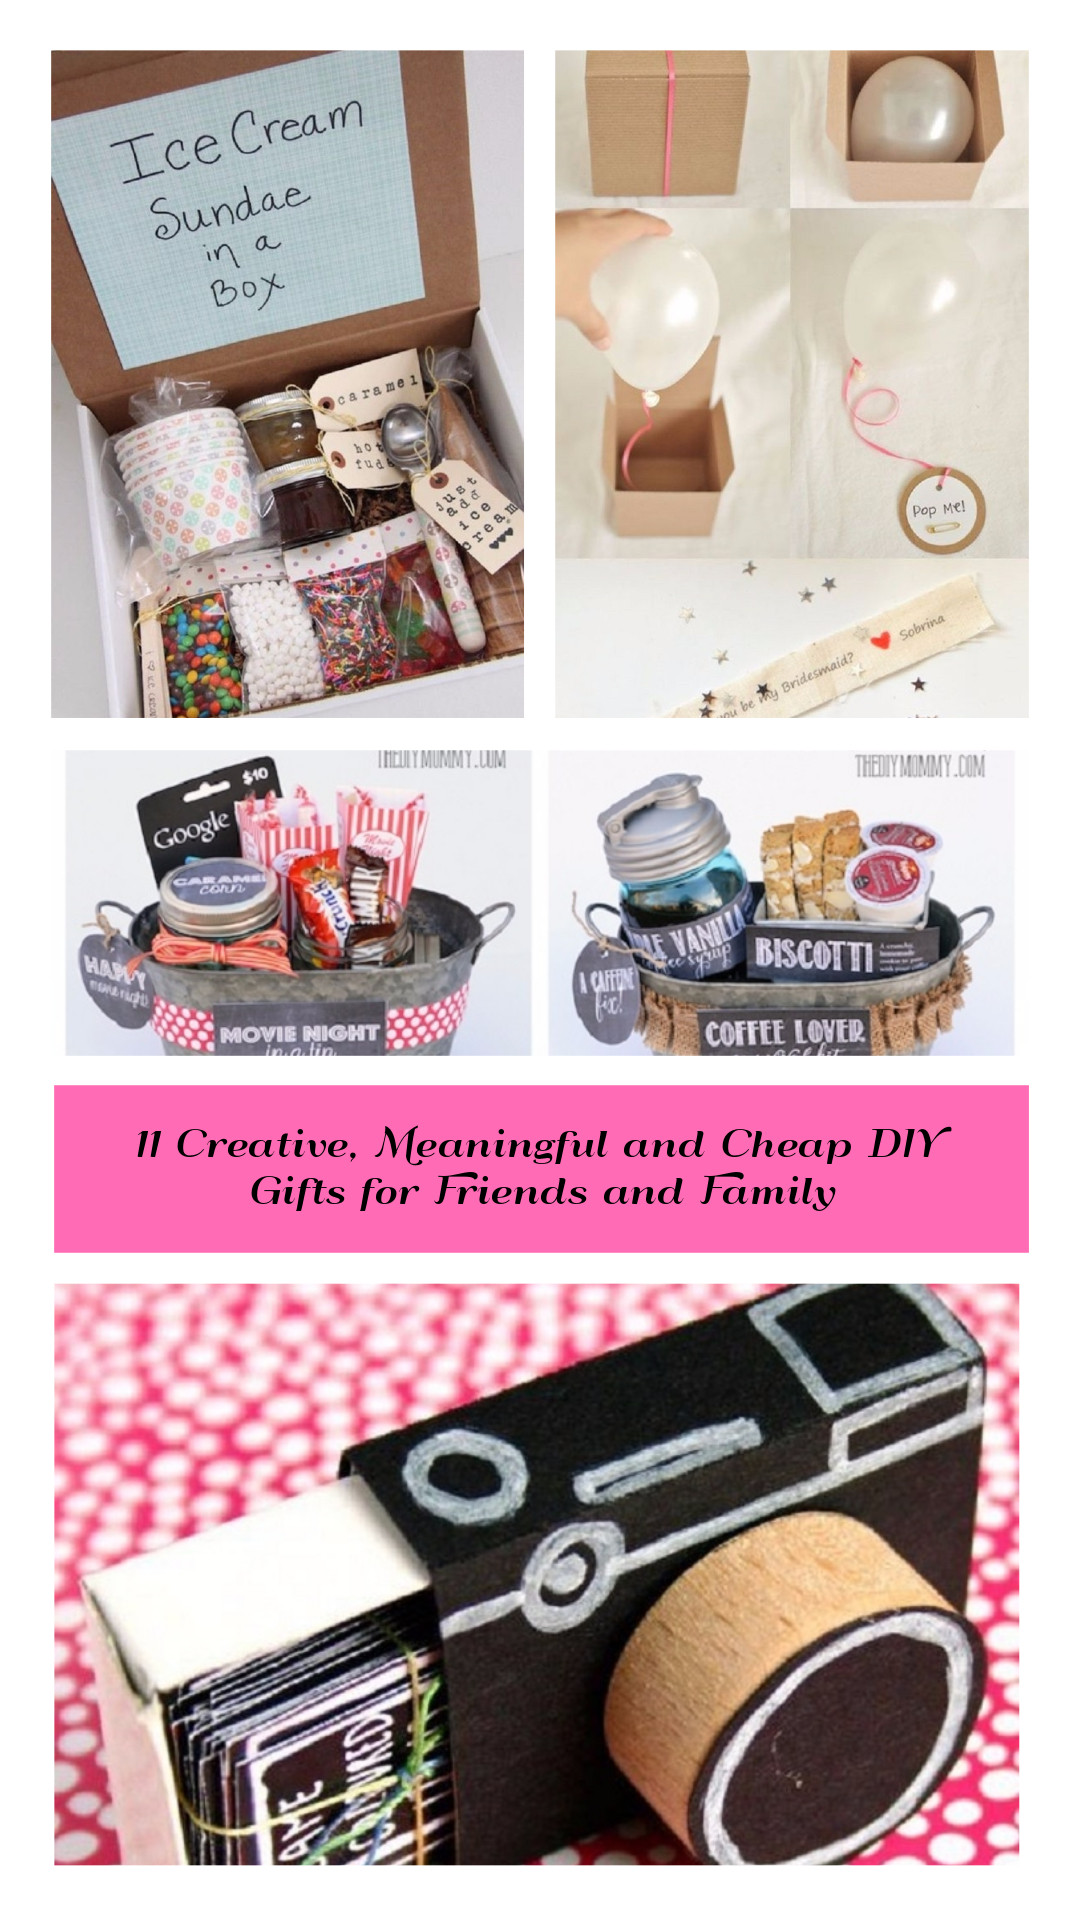 Best ideas about Diy Gift Ideas For Friends . Save or Pin 11 Creative Meaningful and Cheap DIY Gifts for Friends Now.